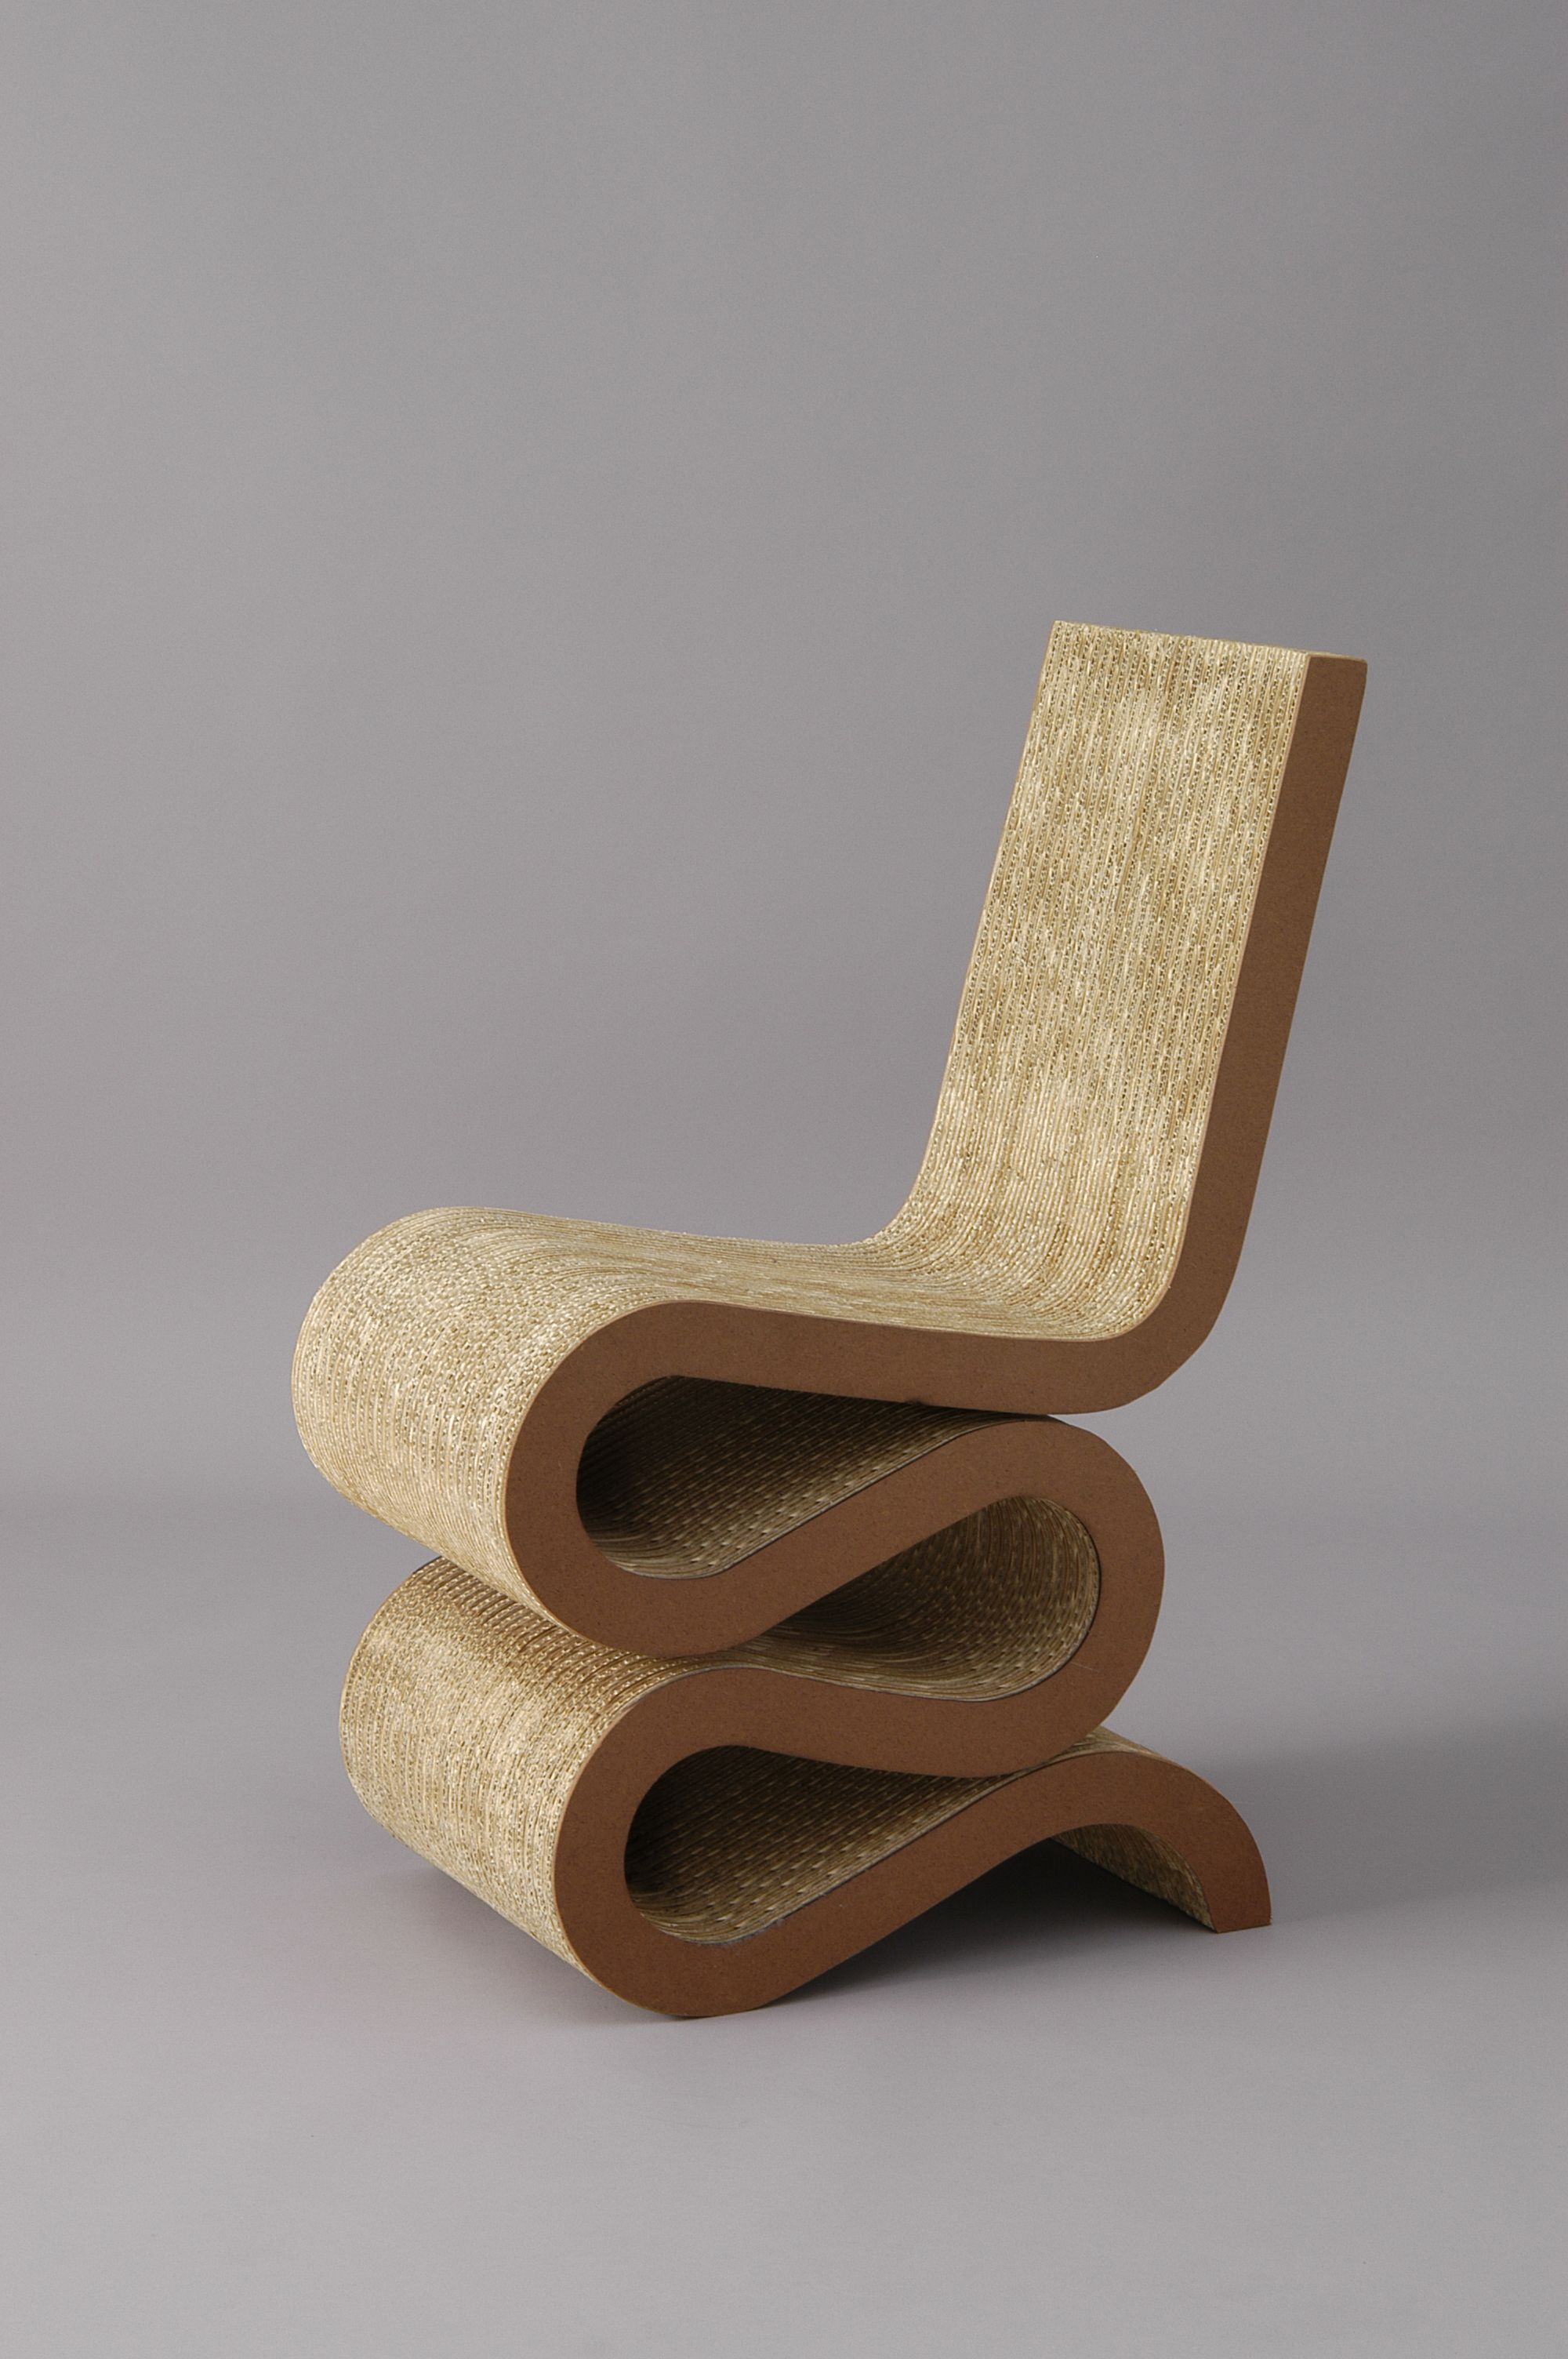 Wiggle Chair By Frank O Gehry 1969 Home Decor Pinterest  # Muebles De Frank Gehry